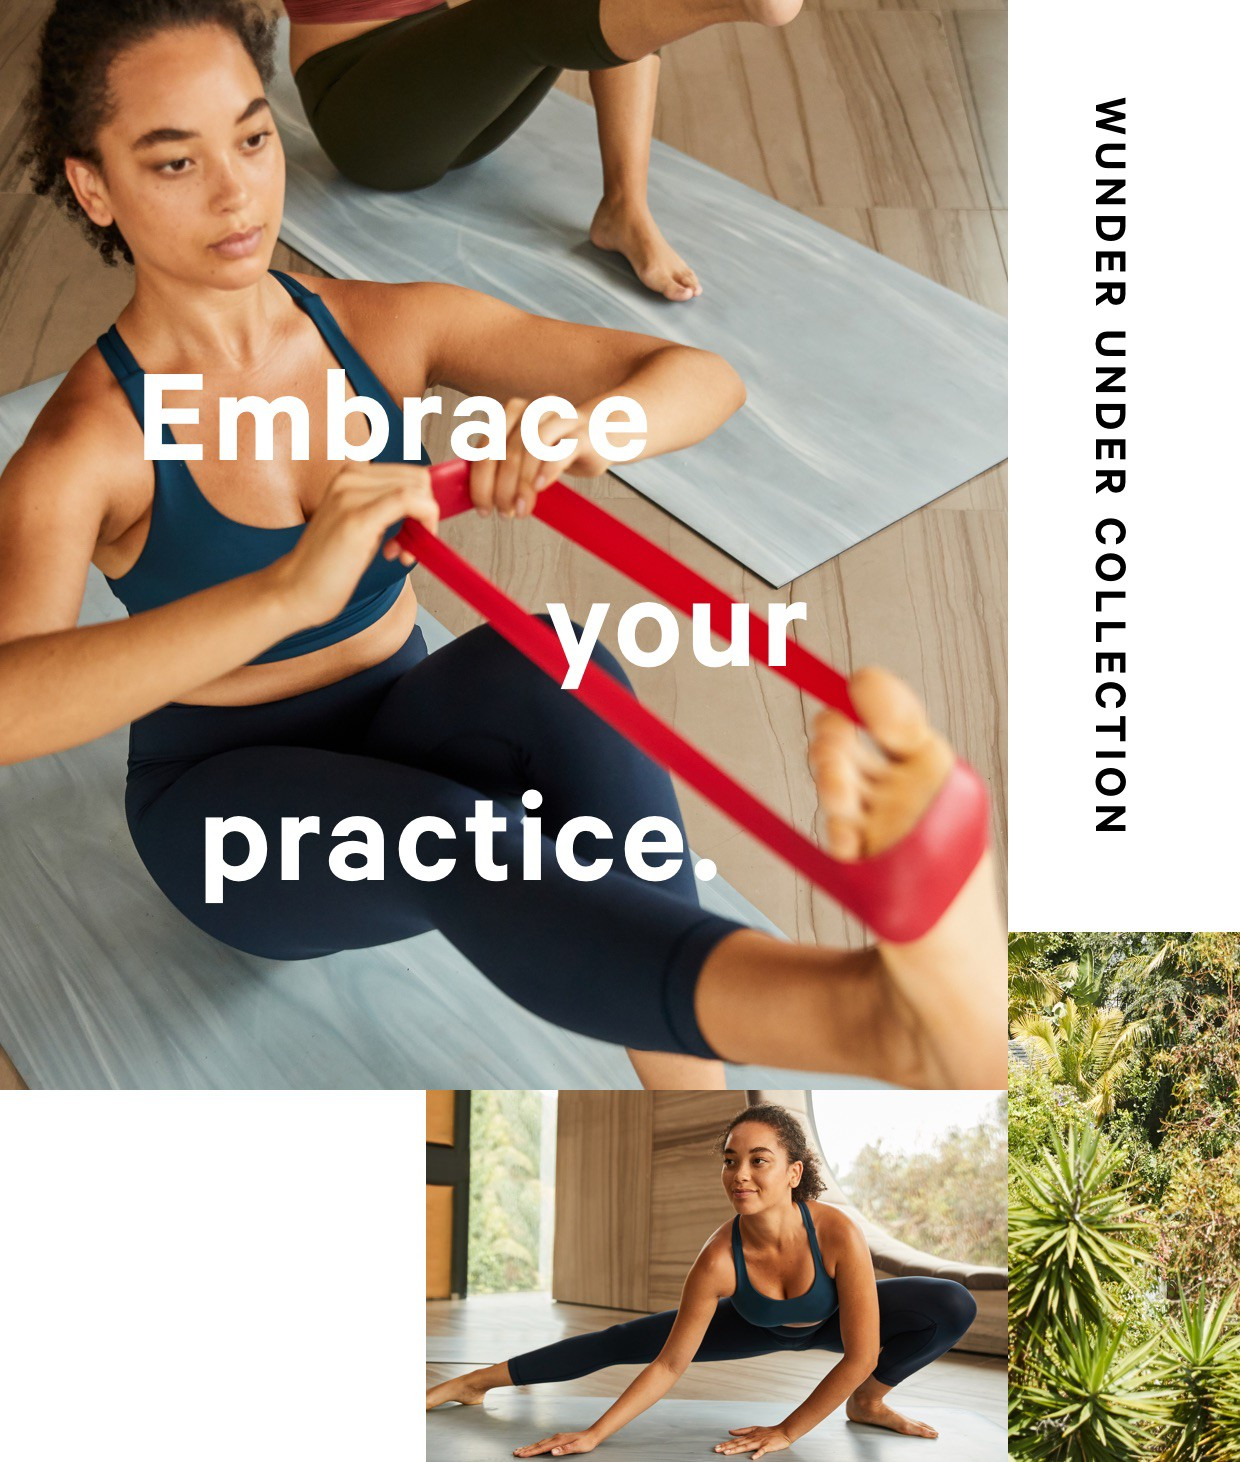 EMBRACE YOUR PRACTICE